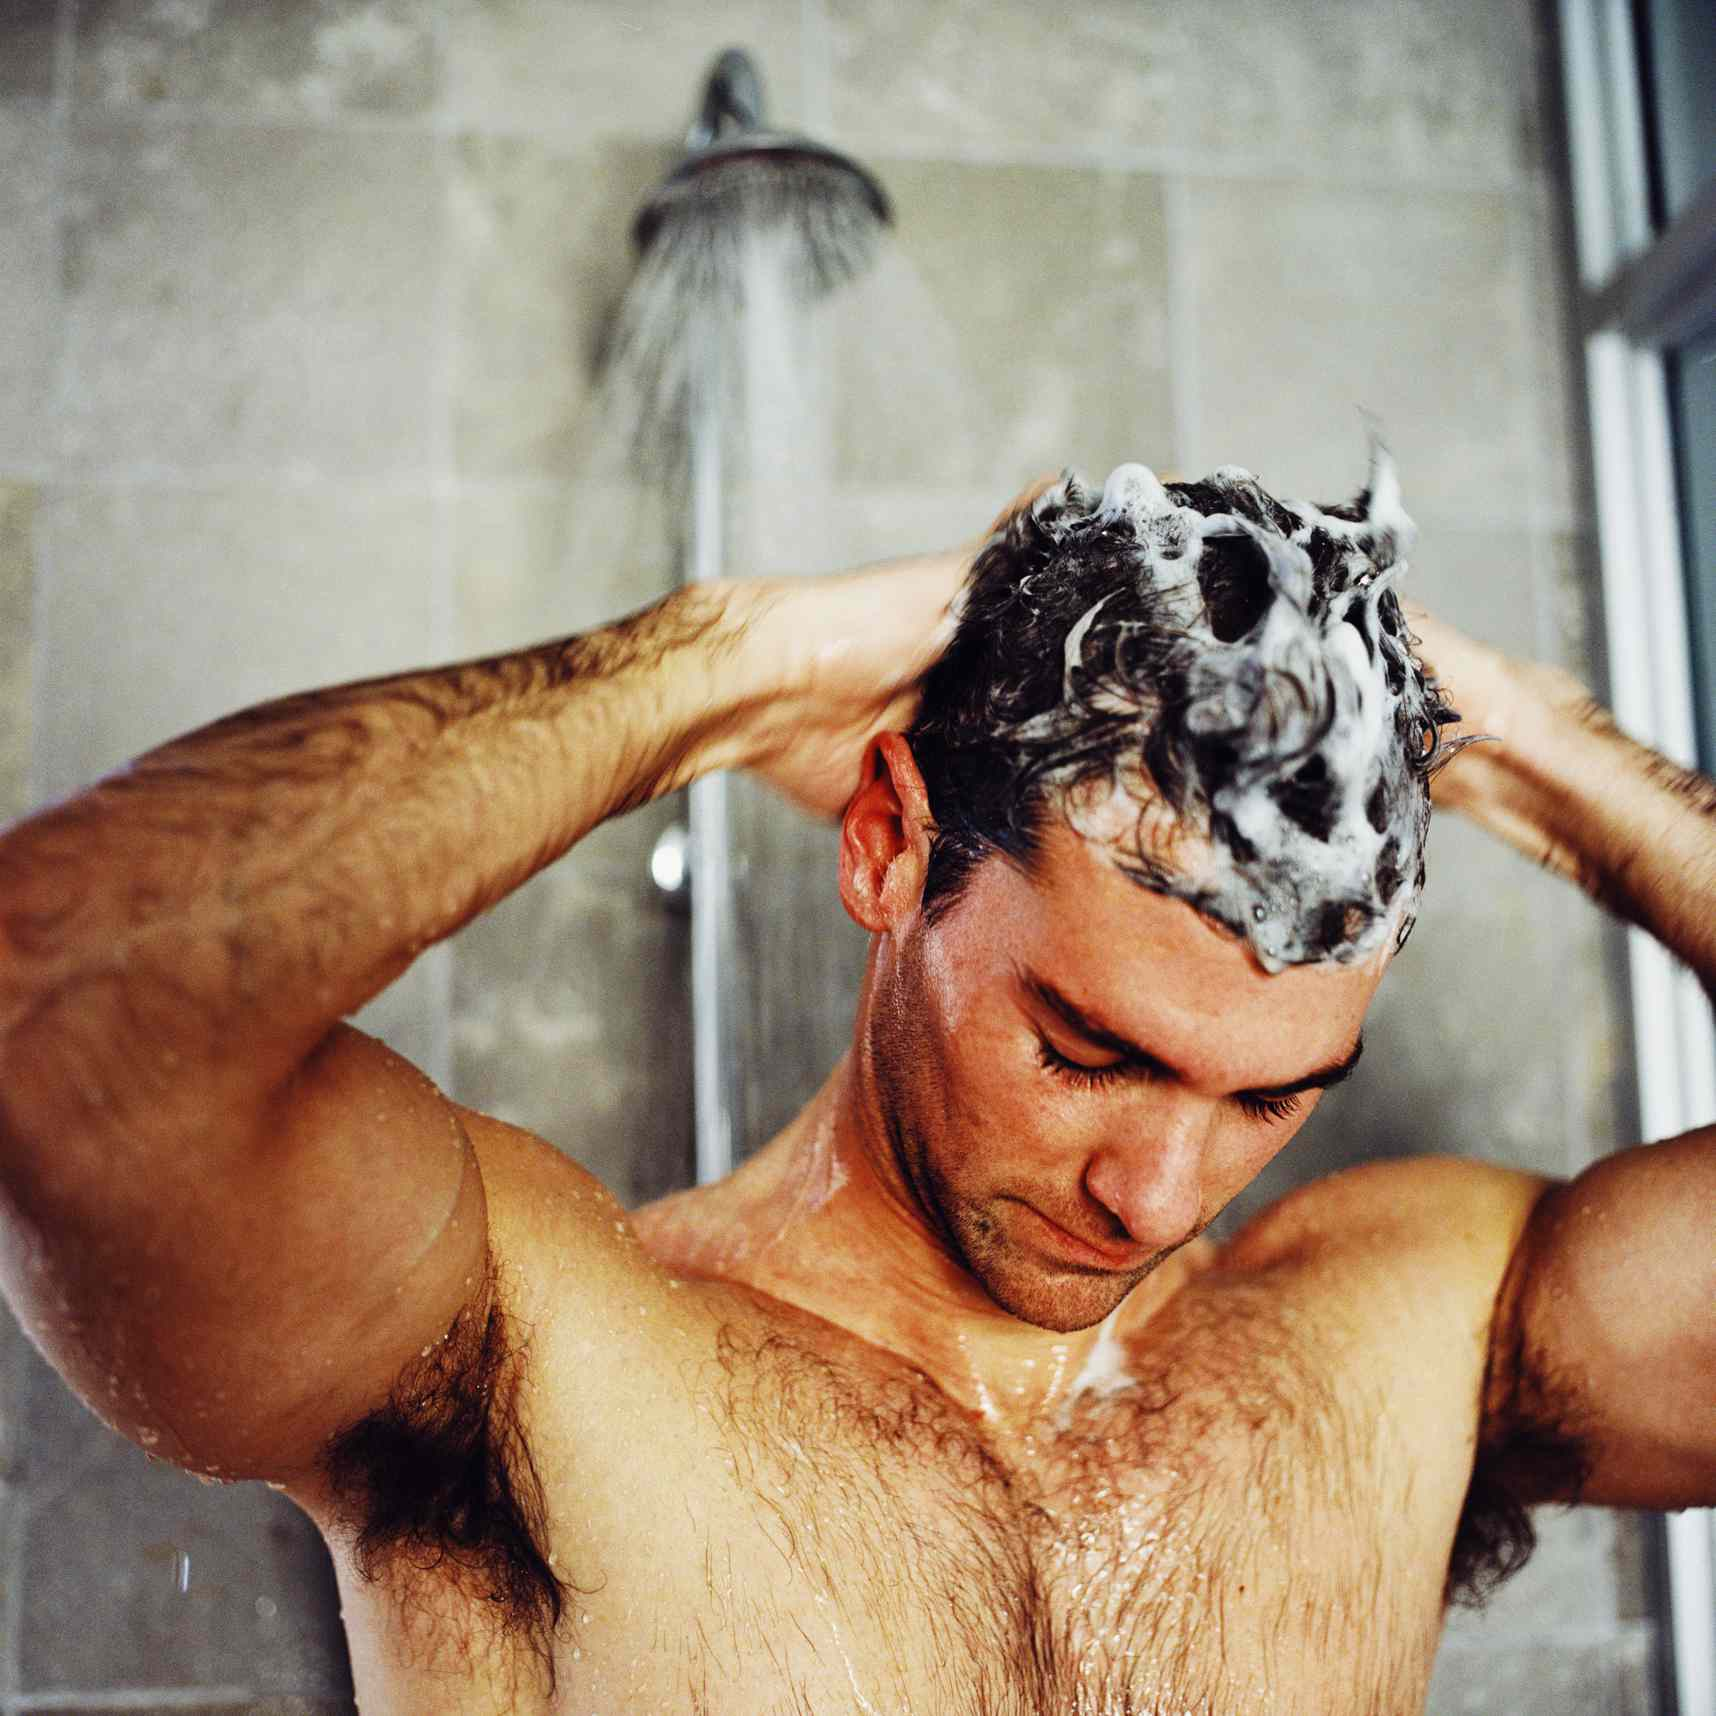 35 Hair Tips For Men According To Experts